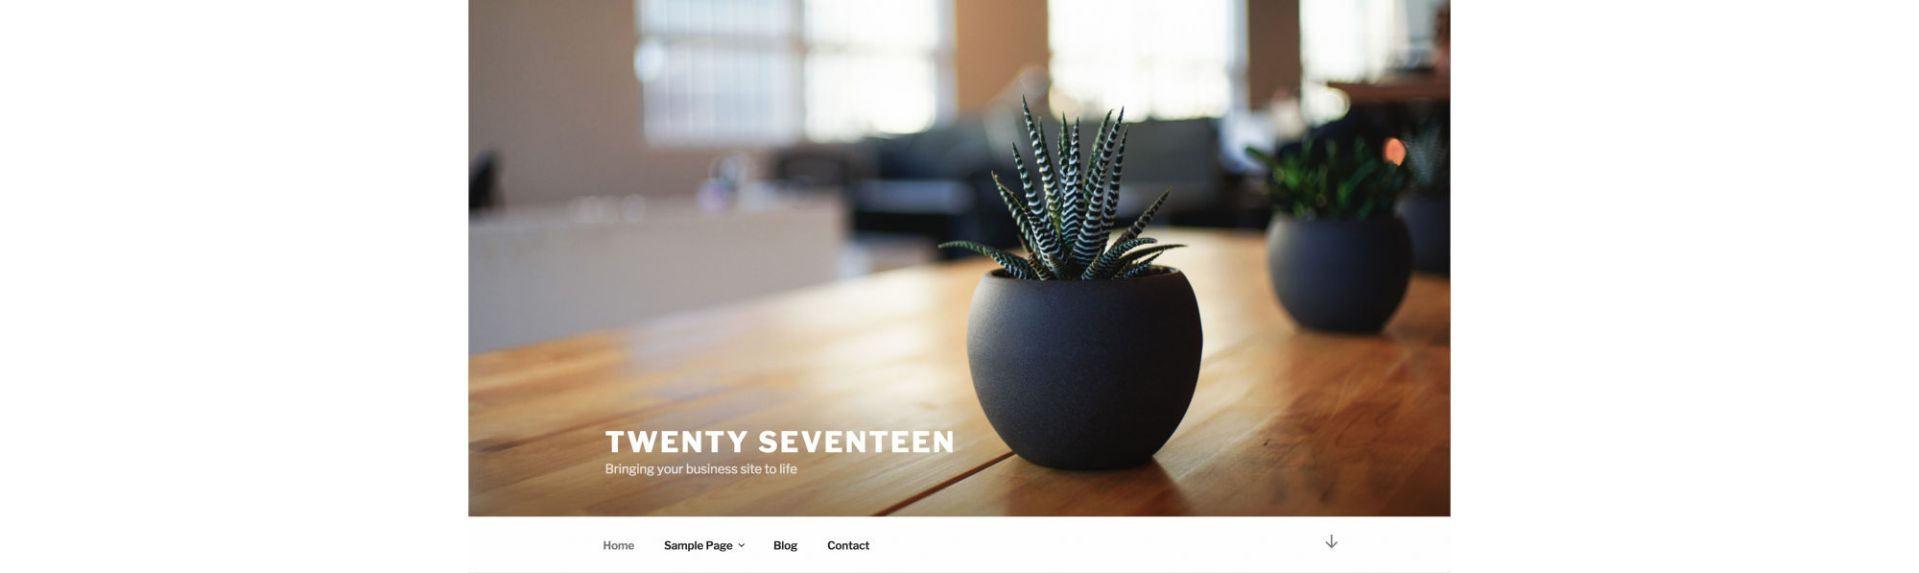 WordPress Test Server Environment, other optimization configuration jobs - twenty-seventeen theme screenshot